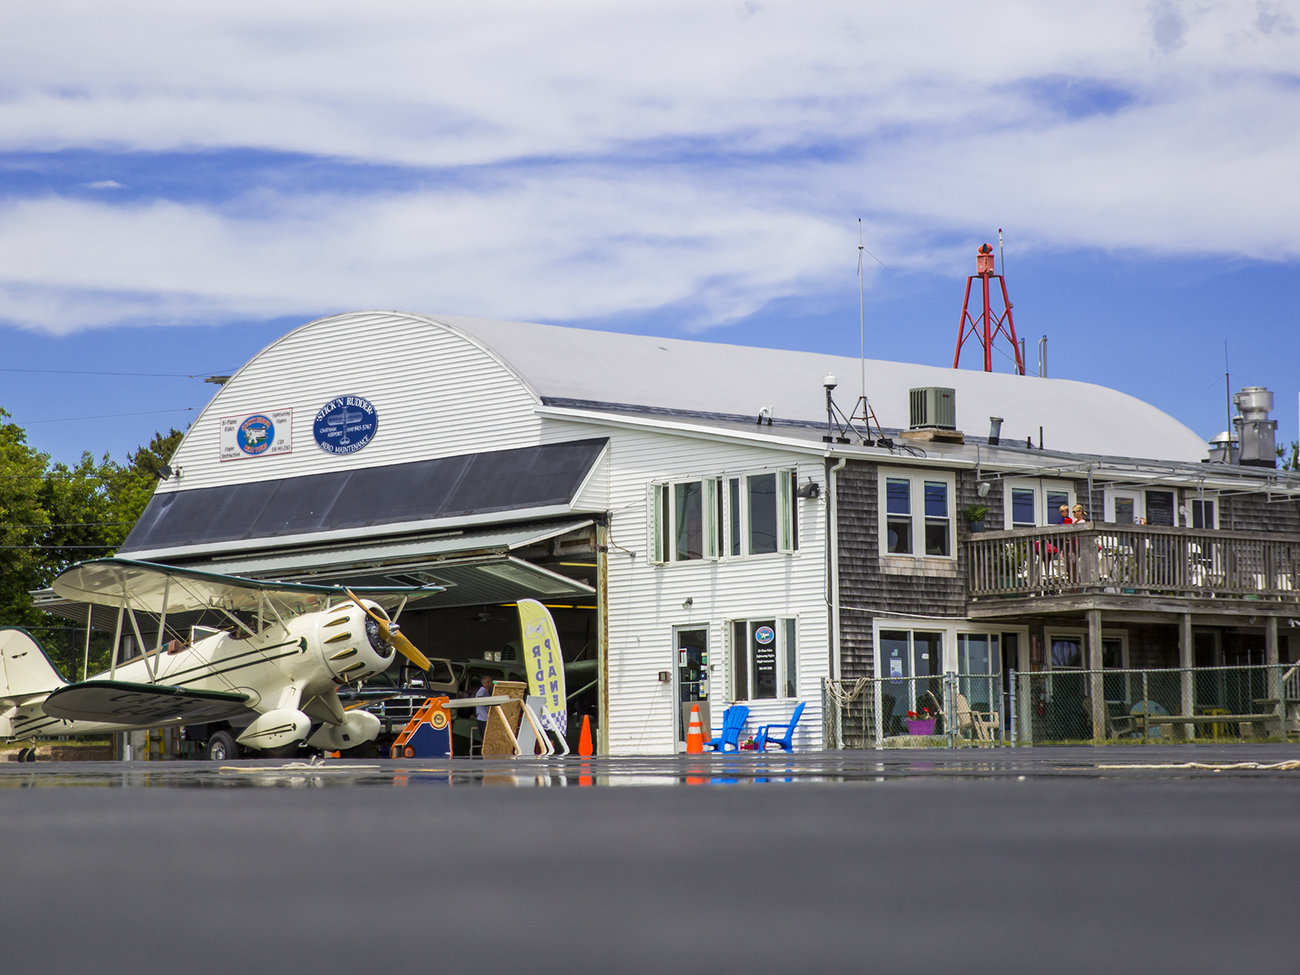 Hangar B Eatery Restaurant in Cape Cod